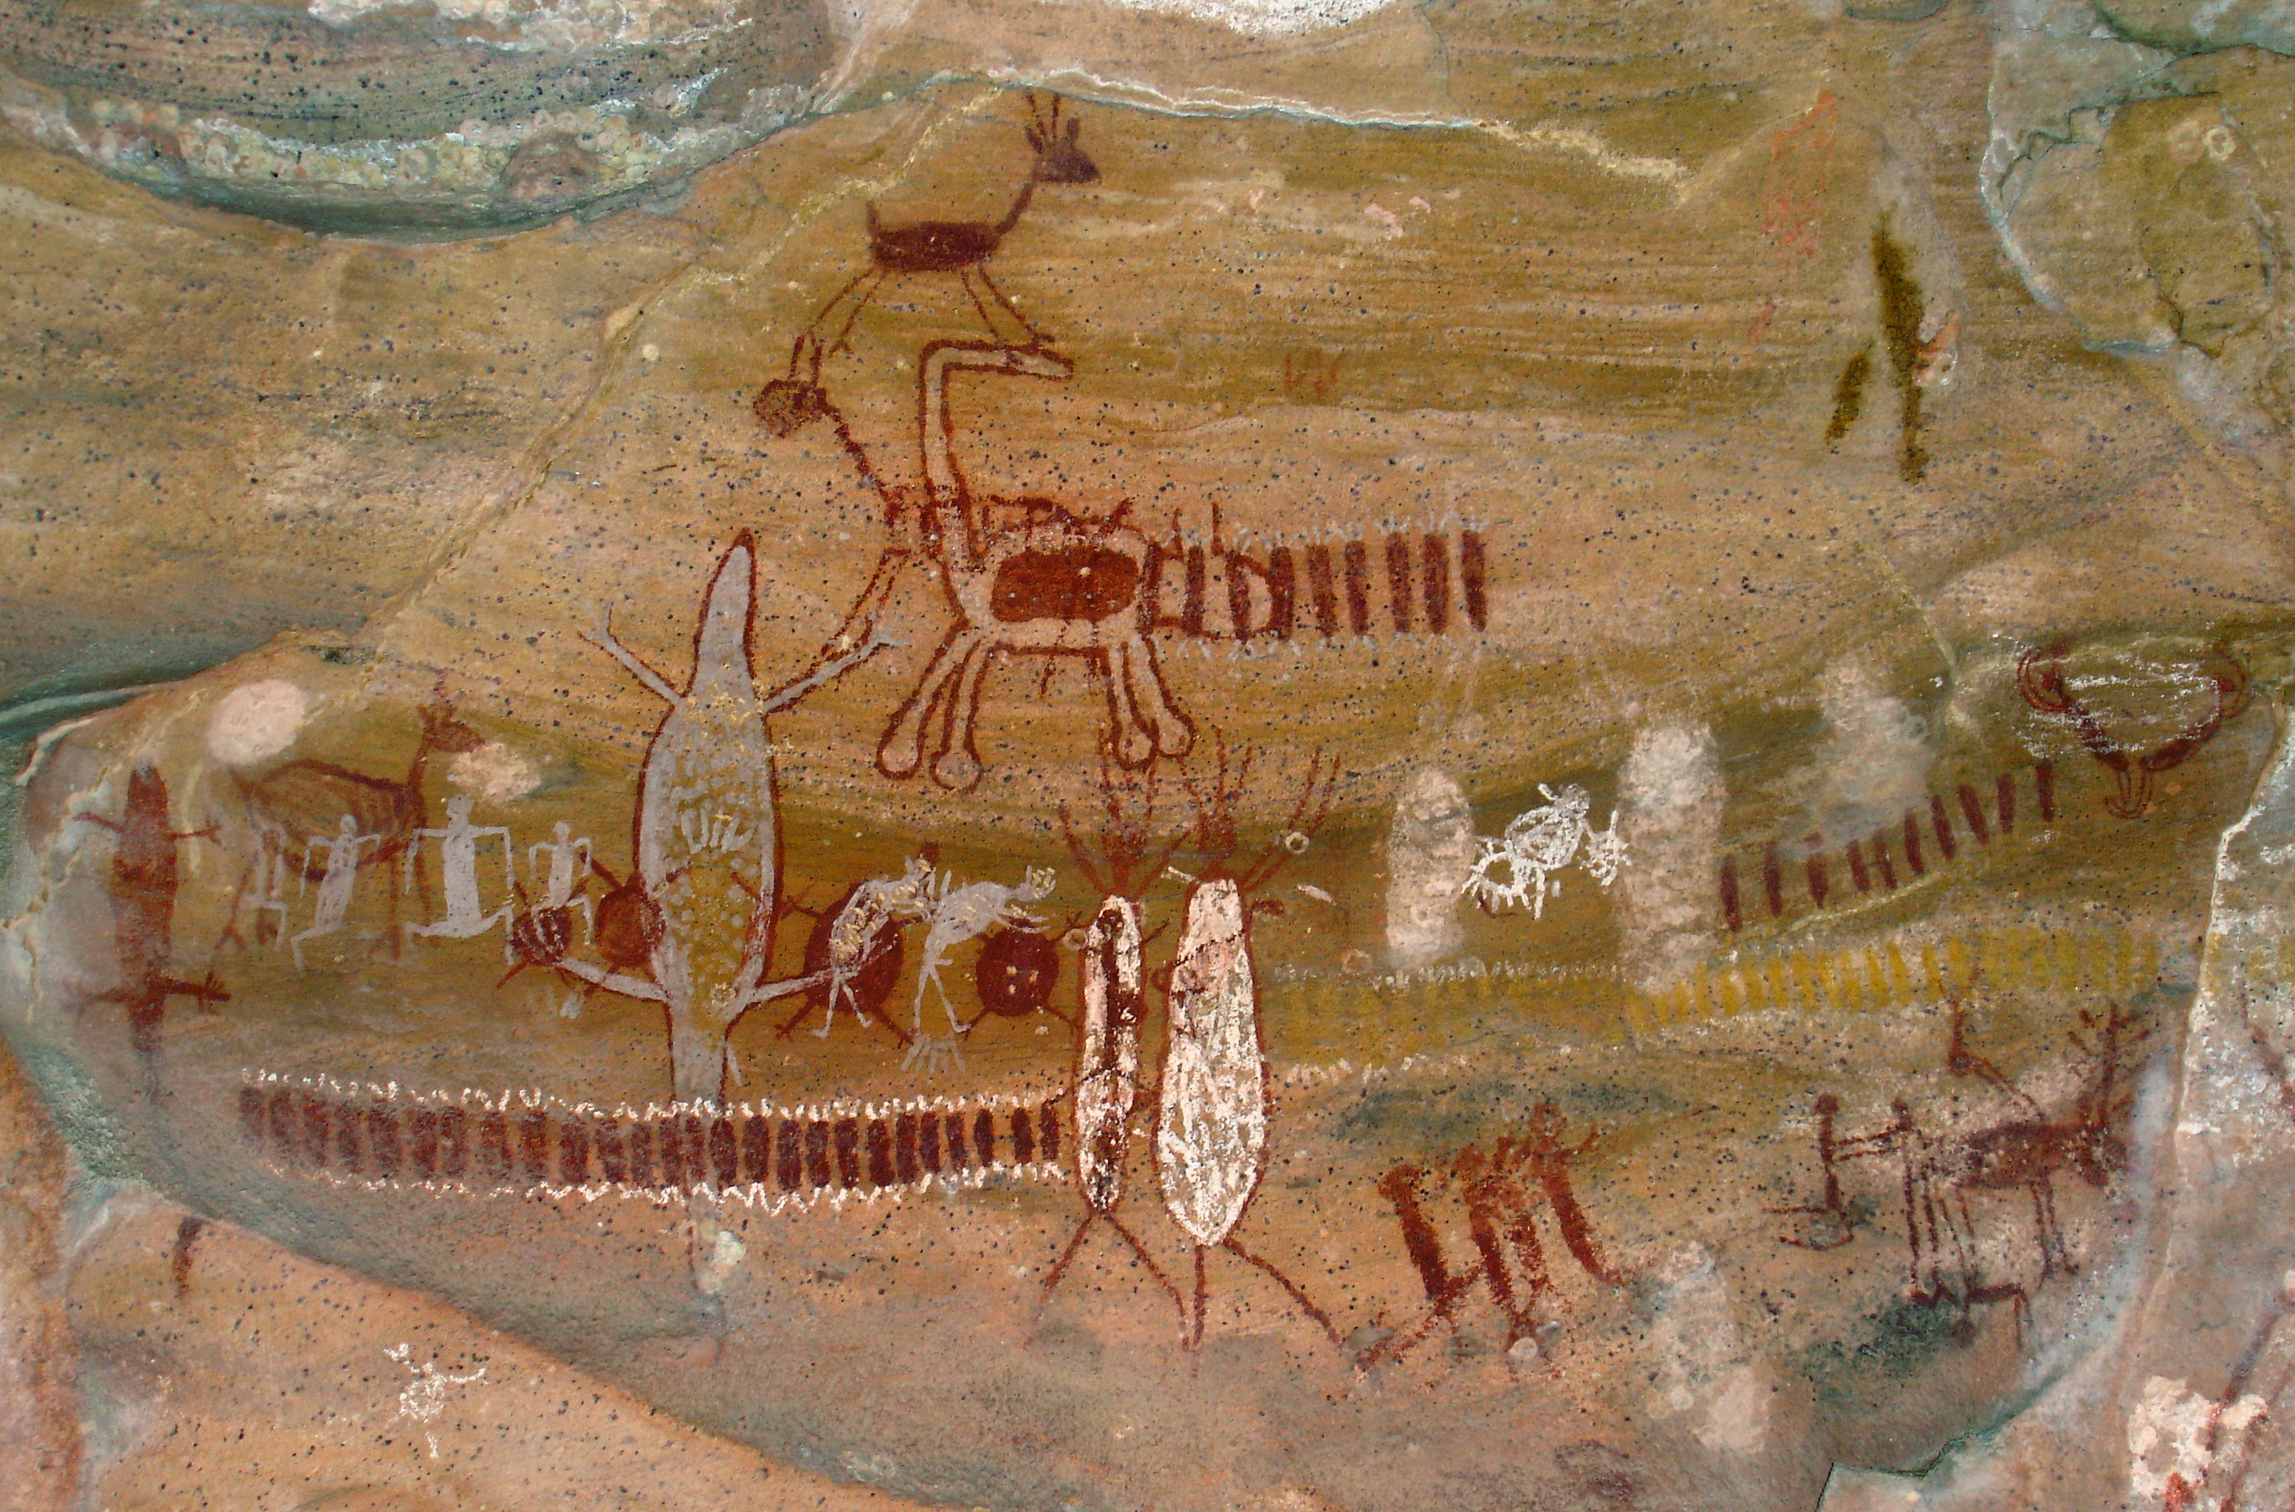 Serra da Capivara - Several Paintings 2b.jpg